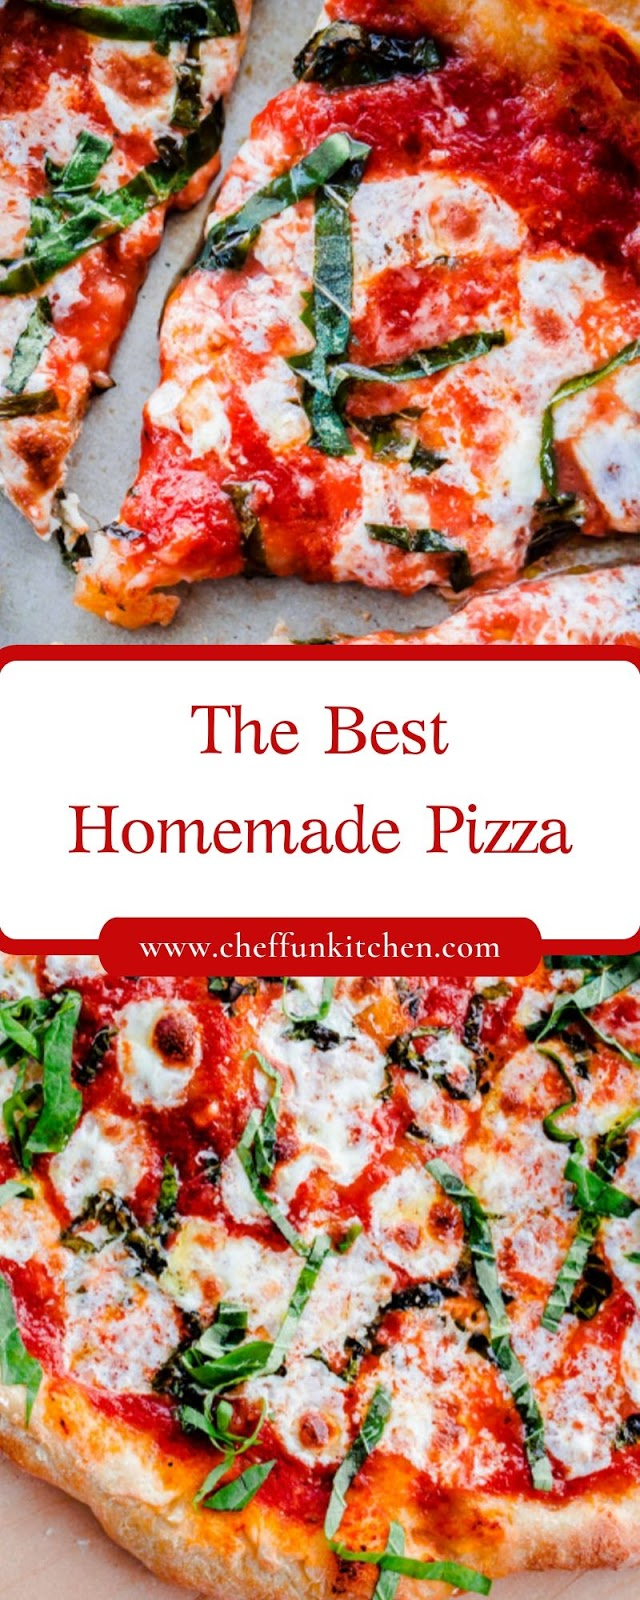 The Best Homemade Pizza